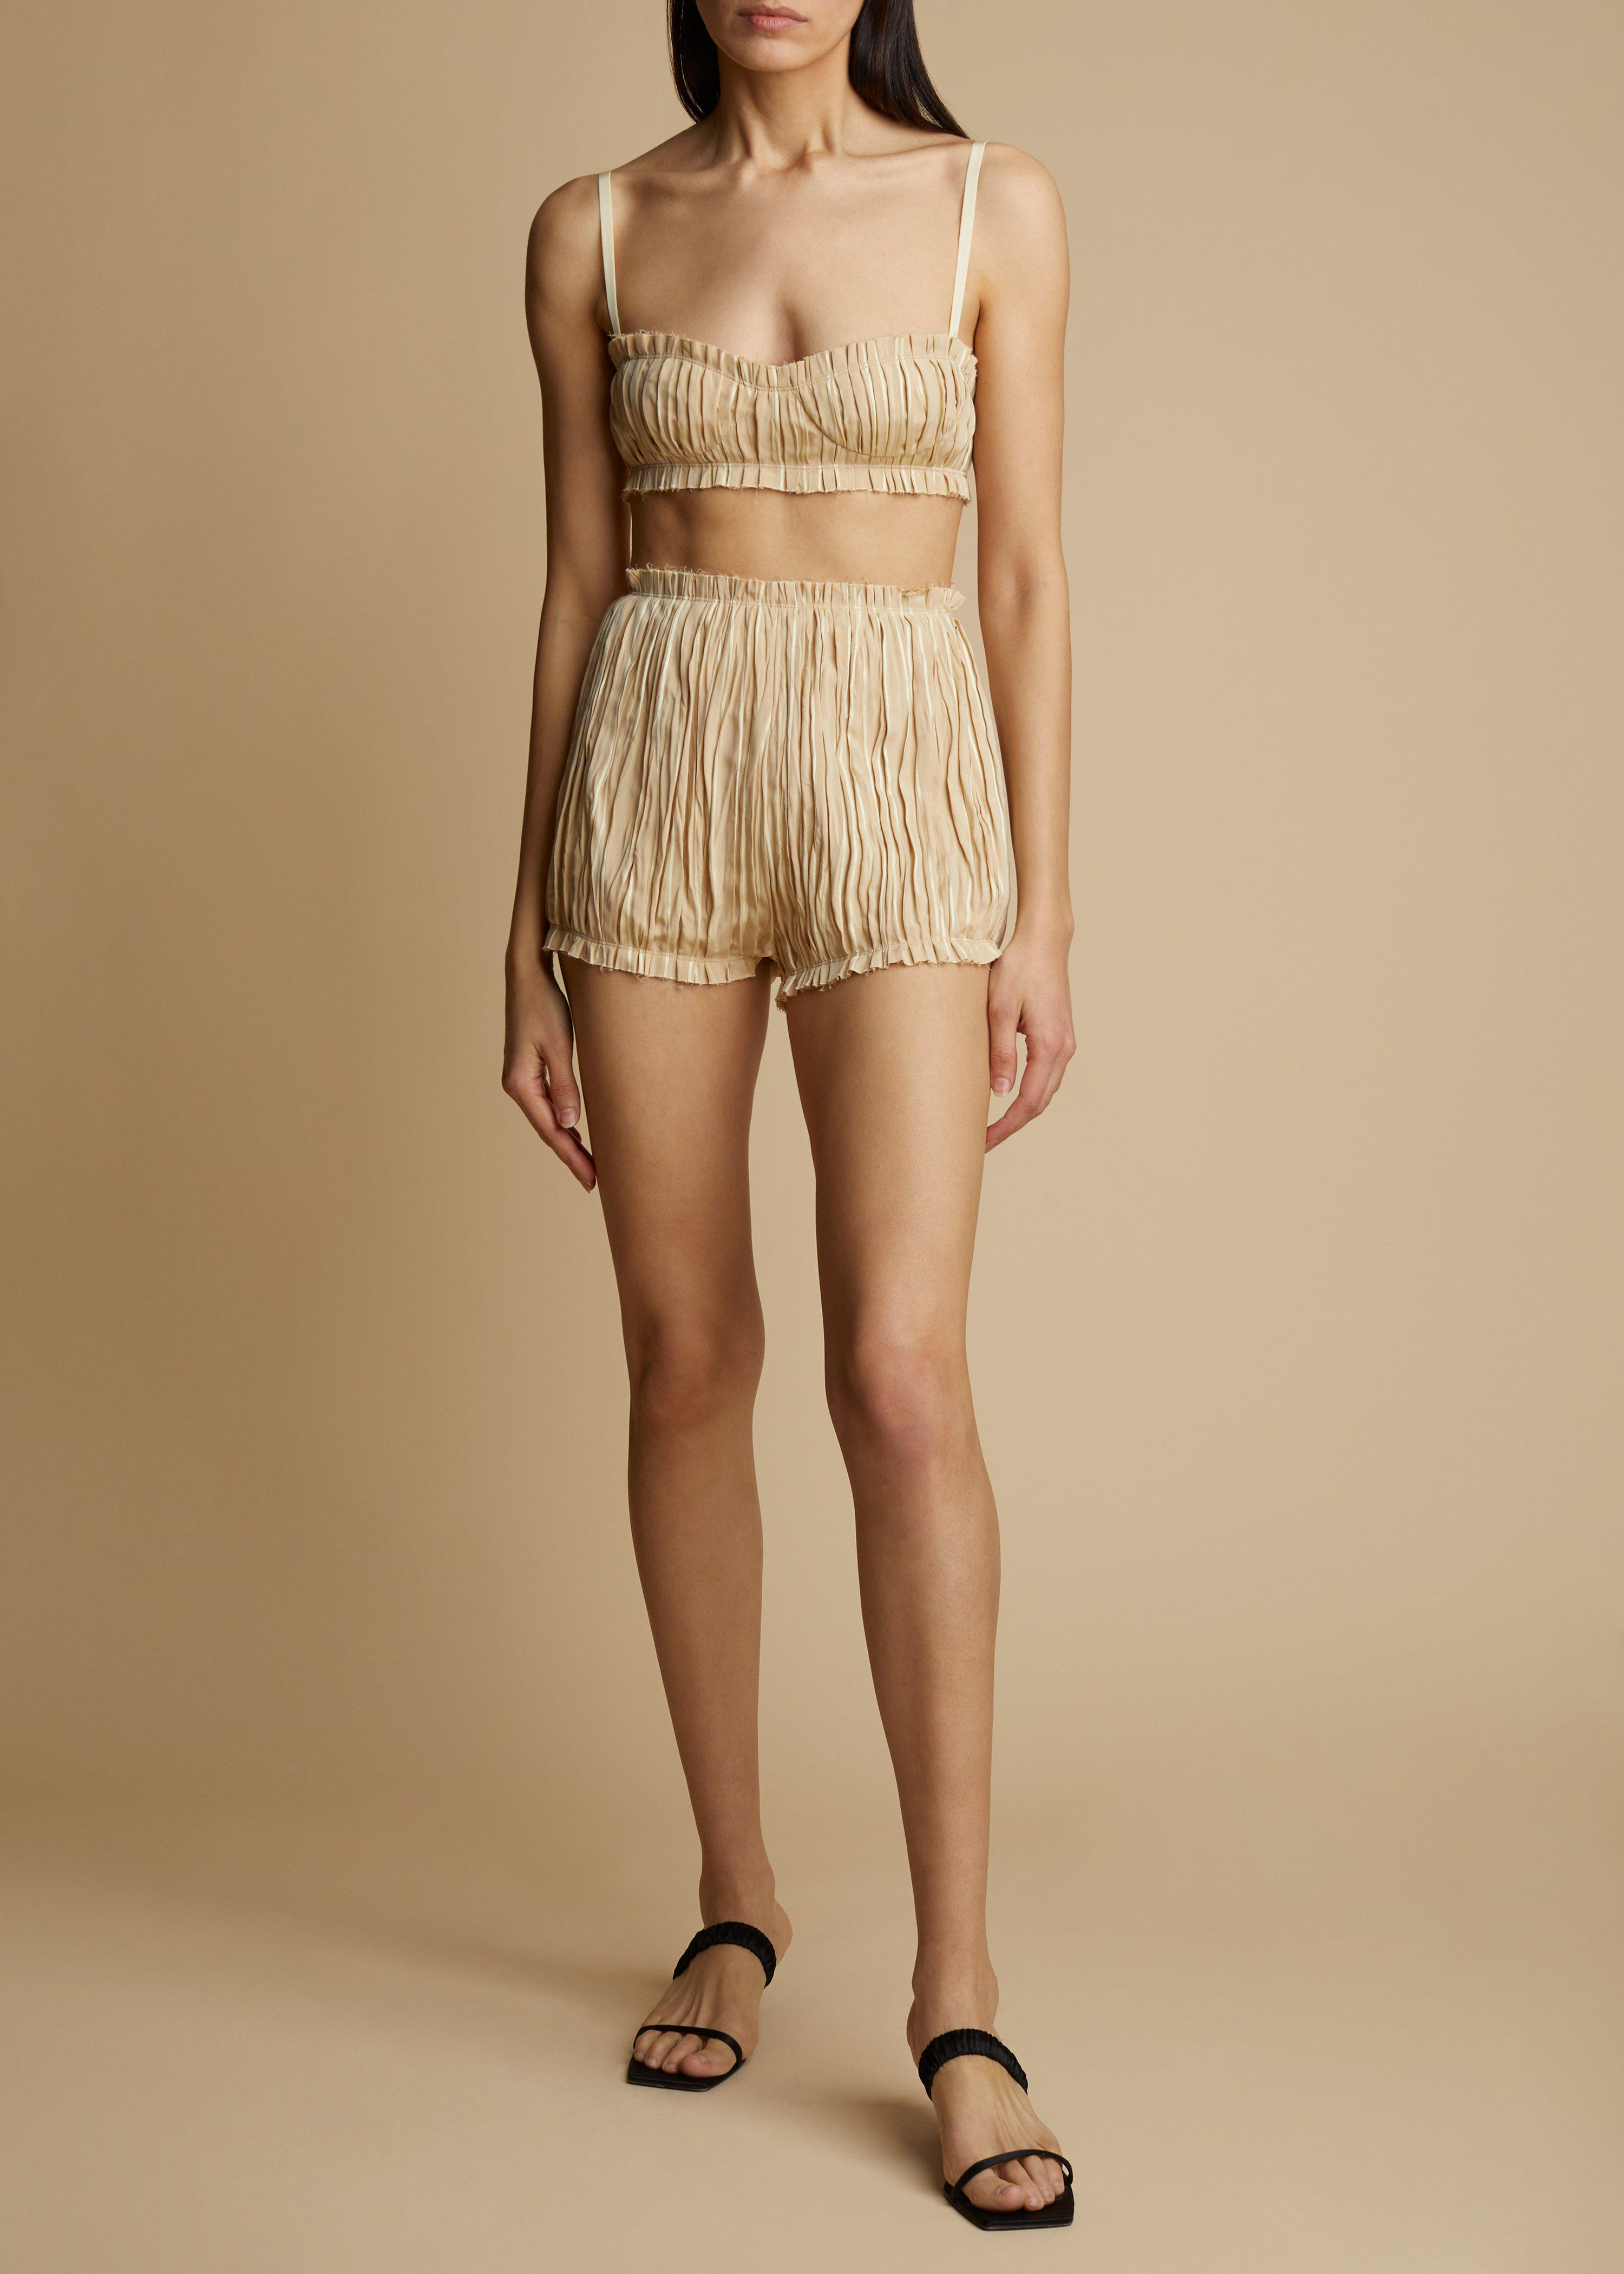 The Hilary Short in Beige